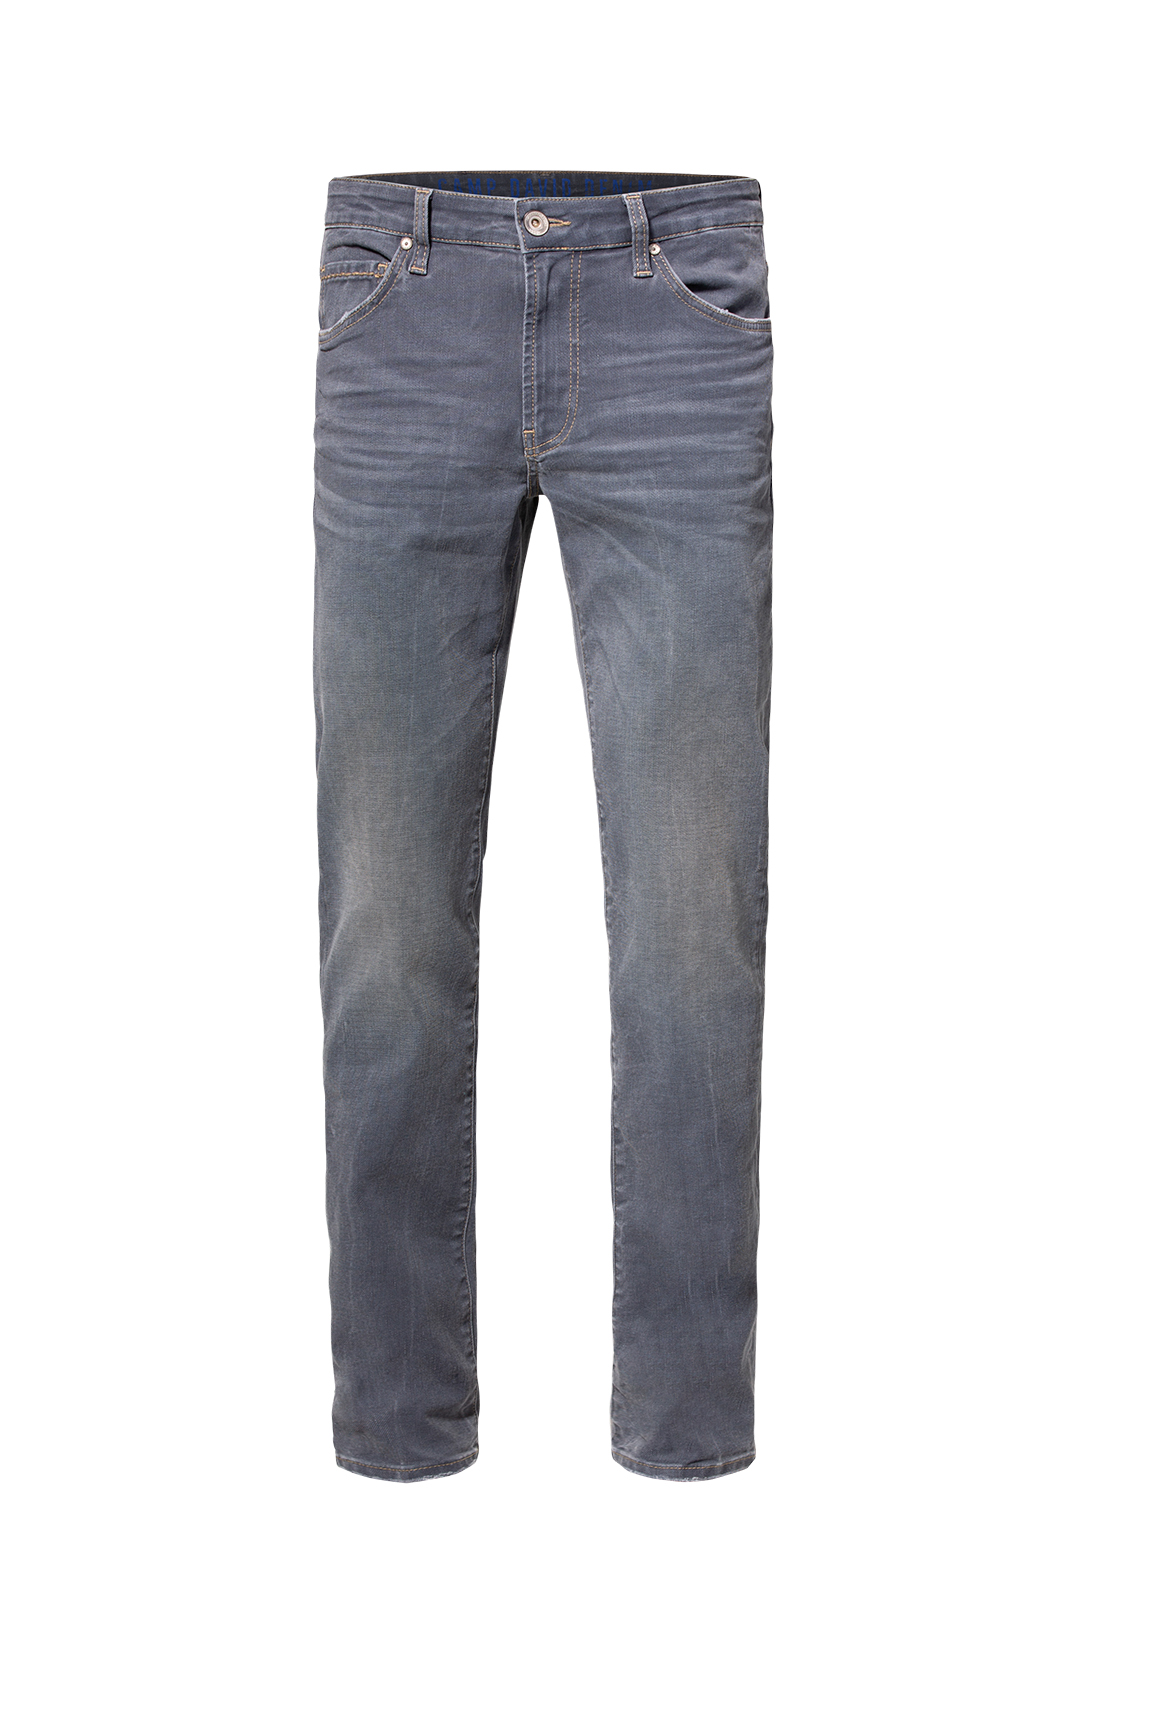 Jeans mit used Waschung